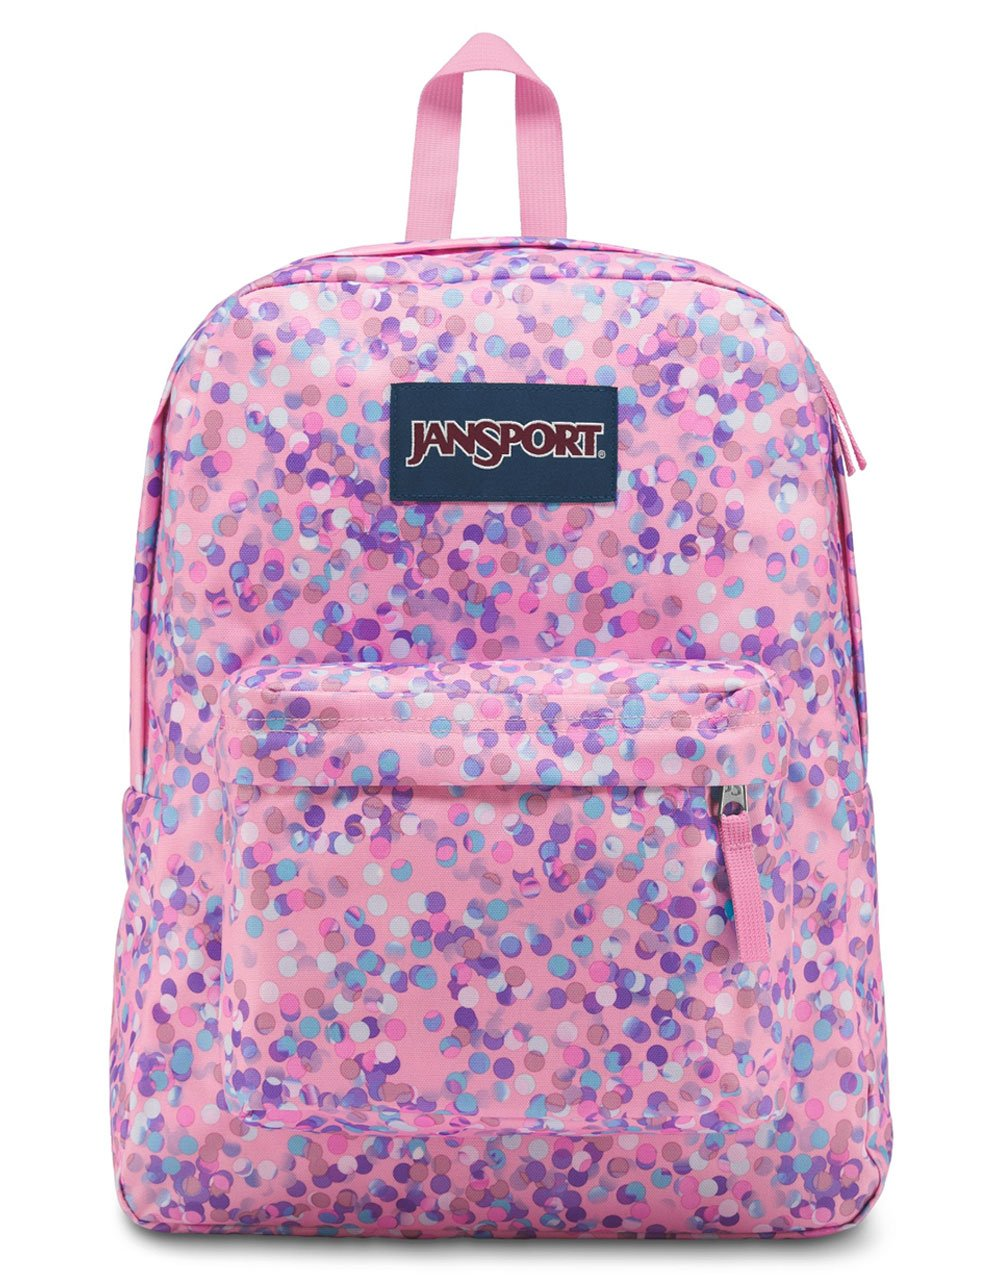 JanSport Unisex Superbreak Classic Ultralight Backpack Pink Sparkle Dot